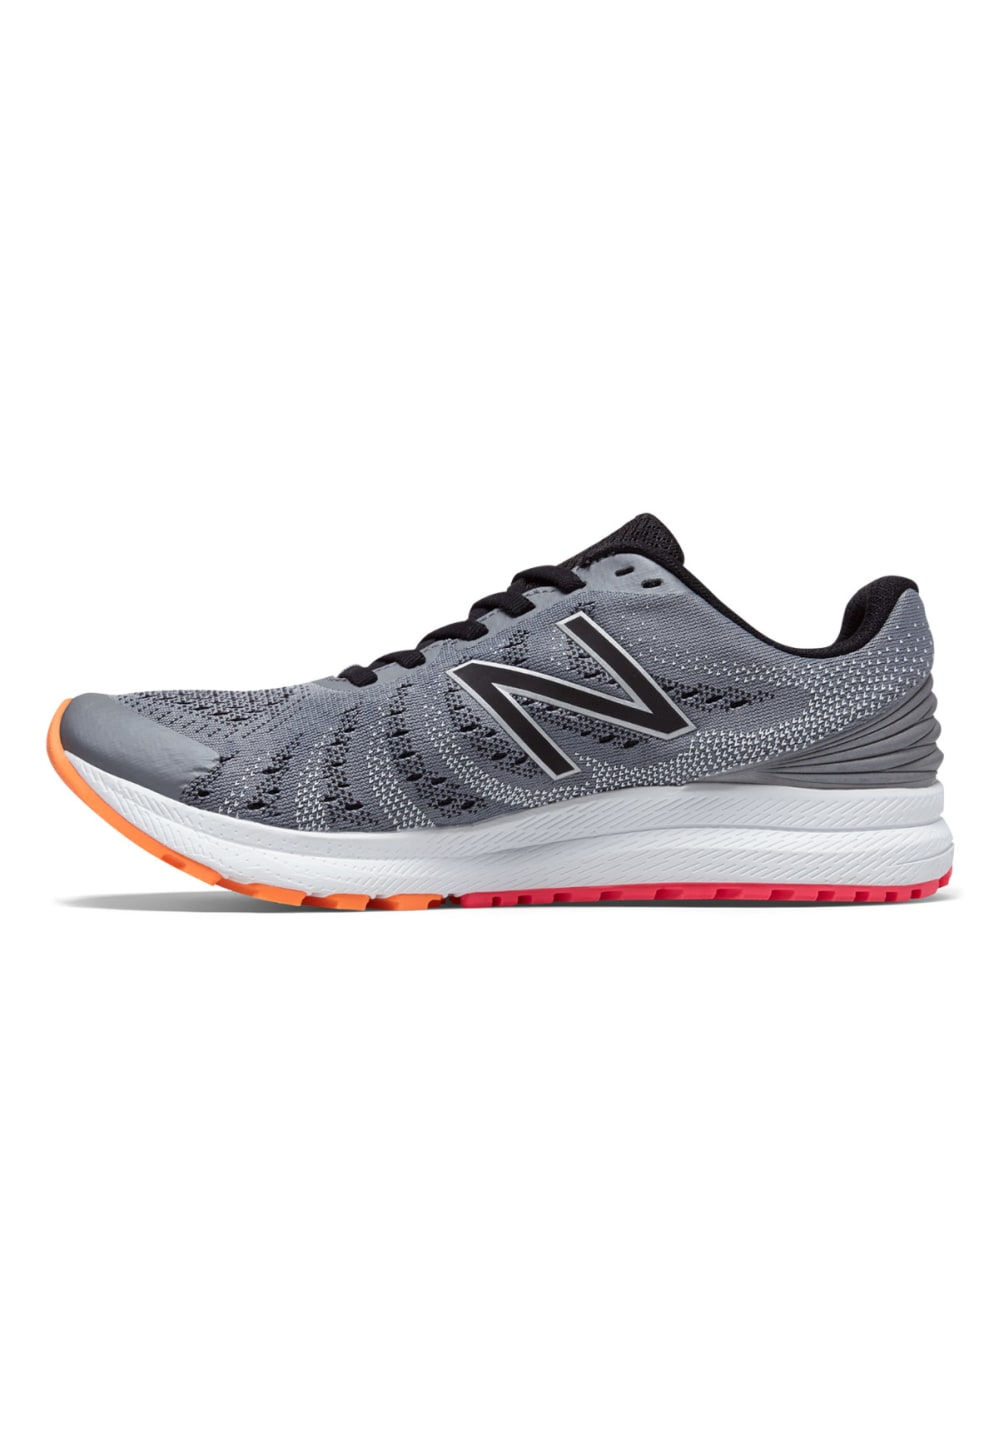 New Balance Fuel Core Rush V3 Running shoes for Women Grey